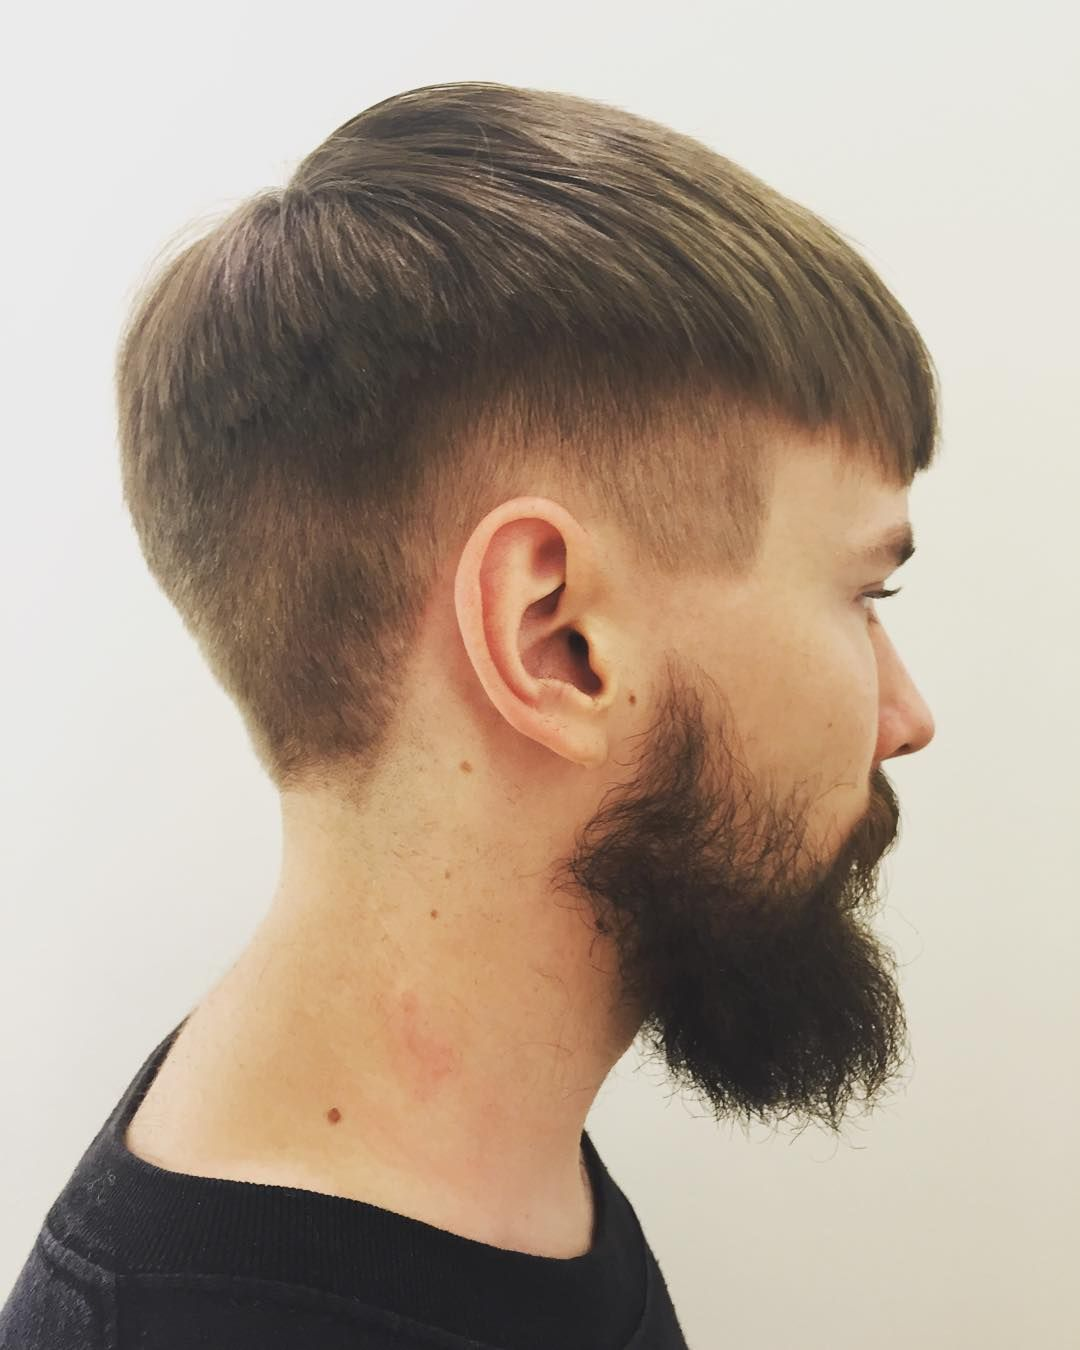 Astonishing Trendy Haircuts For Men Super Cool Mens Basin Cut With Trendy Hairstyles For Men Maxibearus